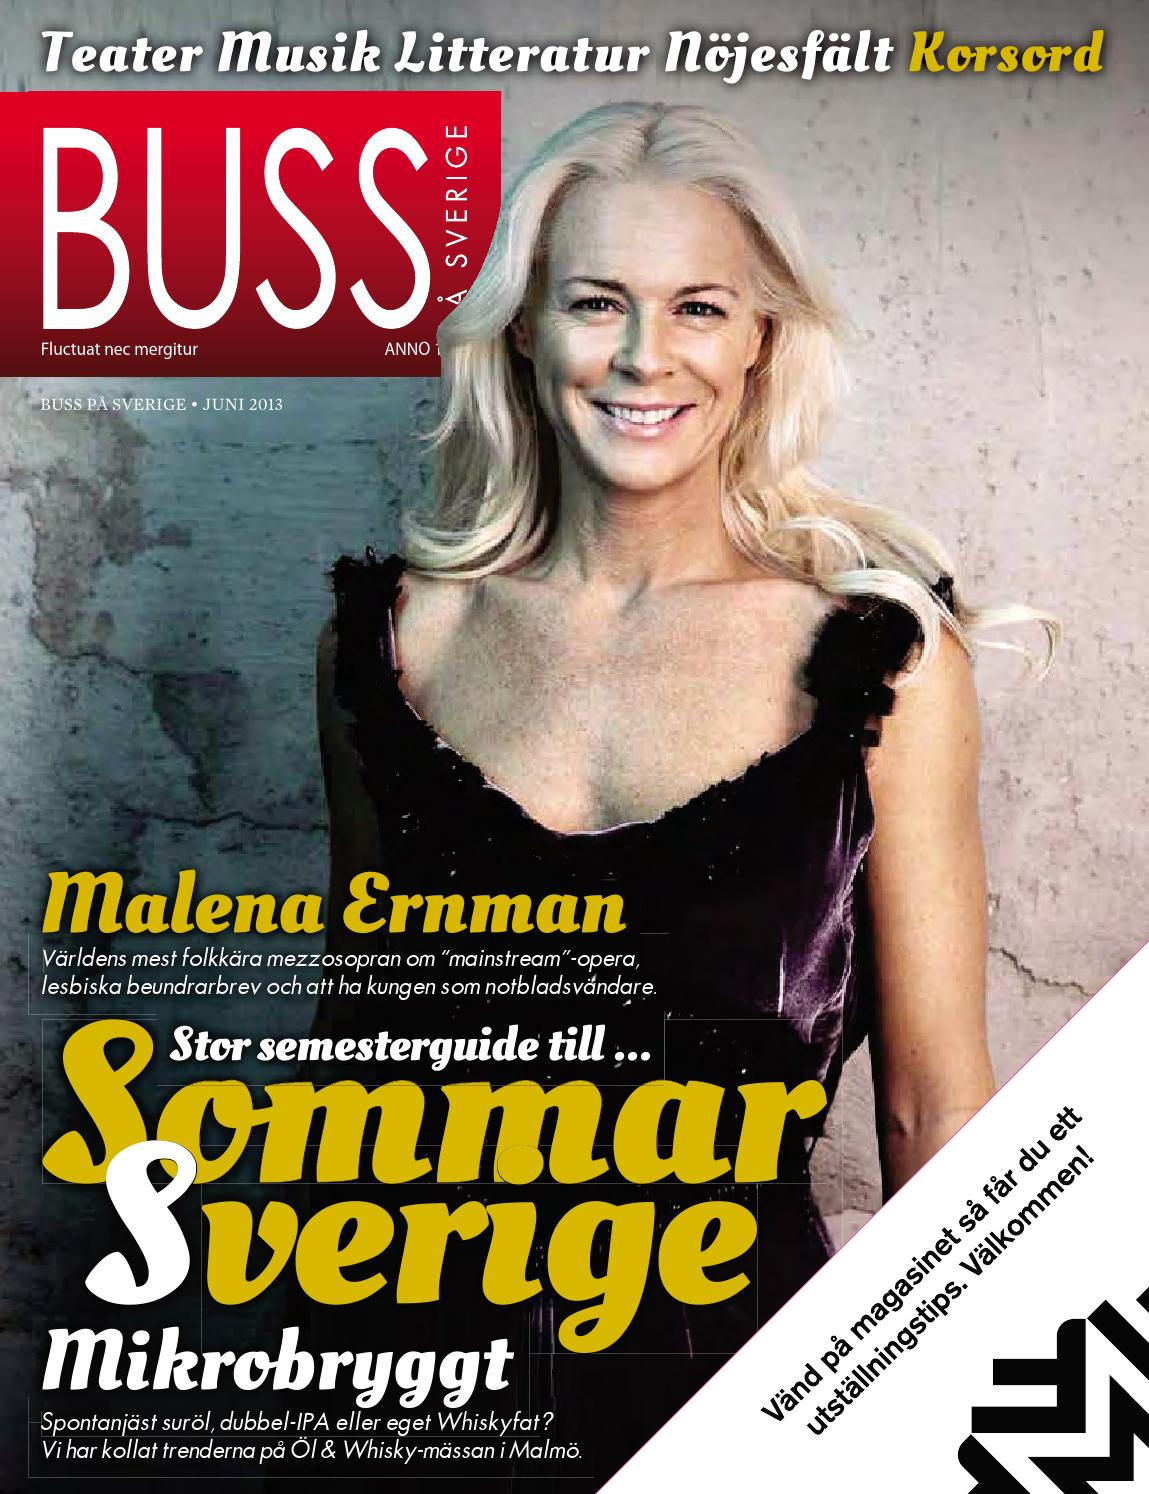 Resemagasinet buss #4 2016 by resemagasinetbuss   issuu